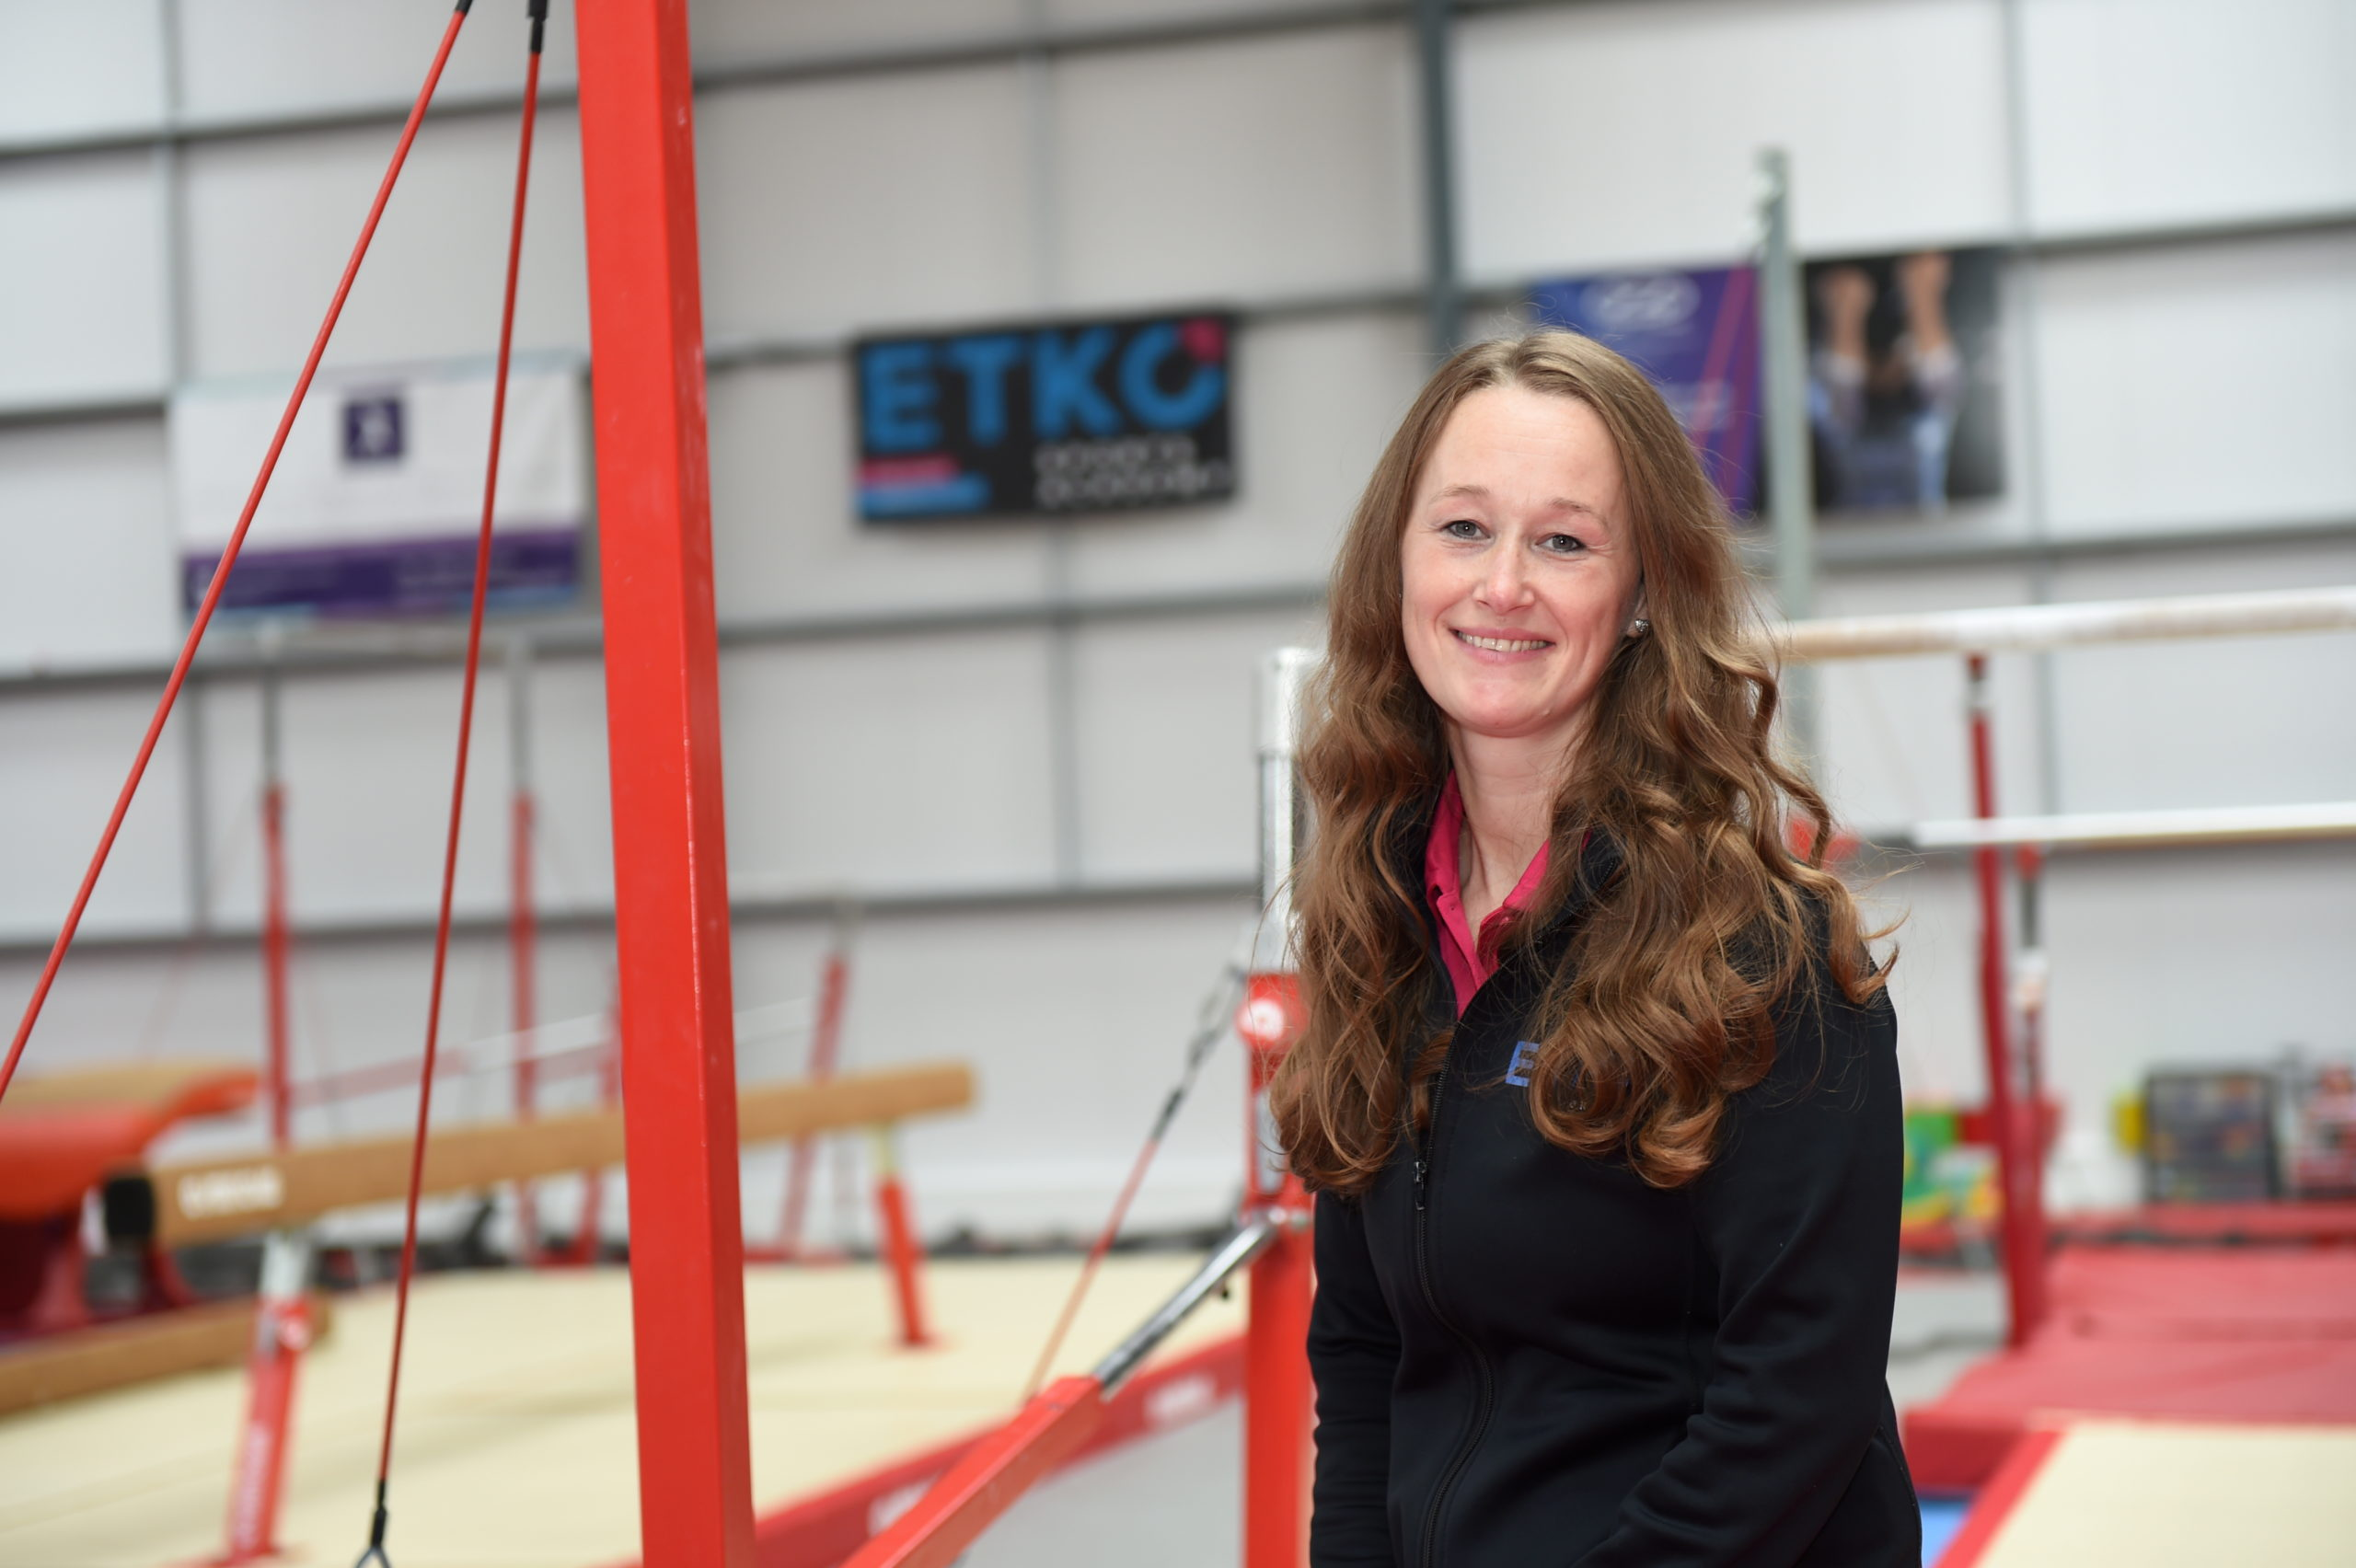 Pictured is Laura Etko, founder and director of ETKO Sports Academy